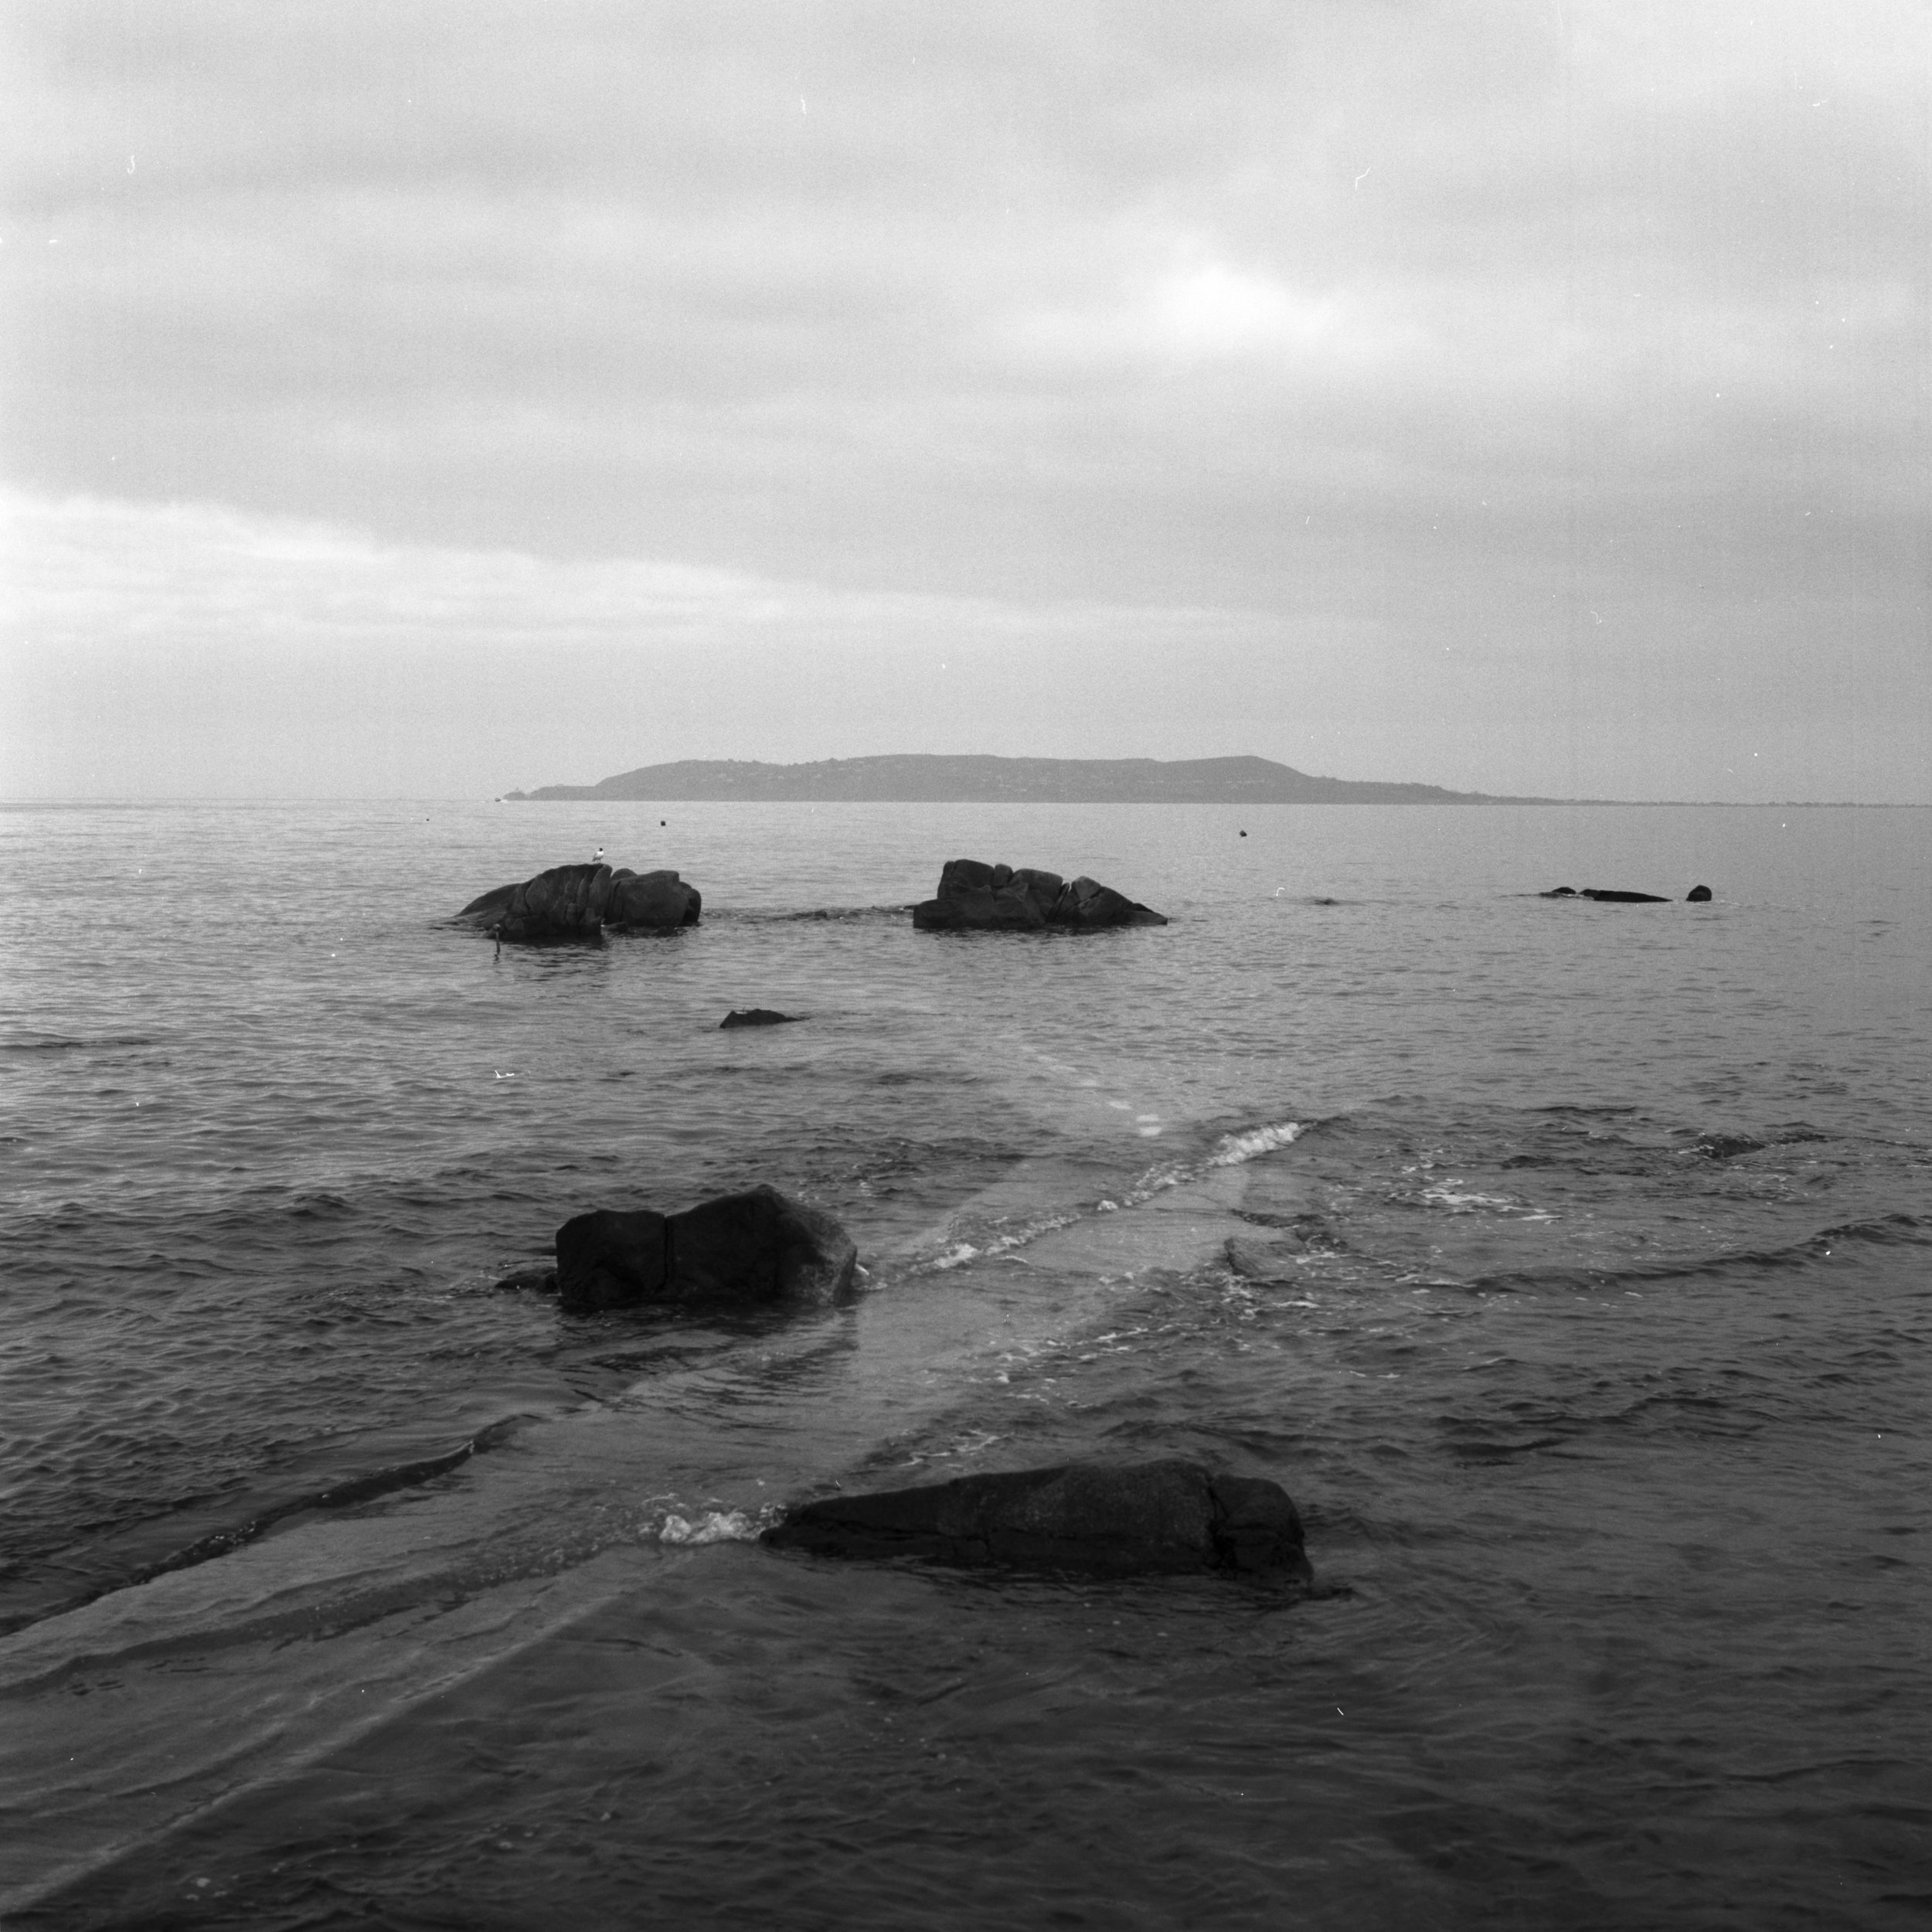 Camera: Yashica Mat-124G  Film: Fujifilm Neopan 100 Acros  Location: Sandycove, Co Dublin, Ireland